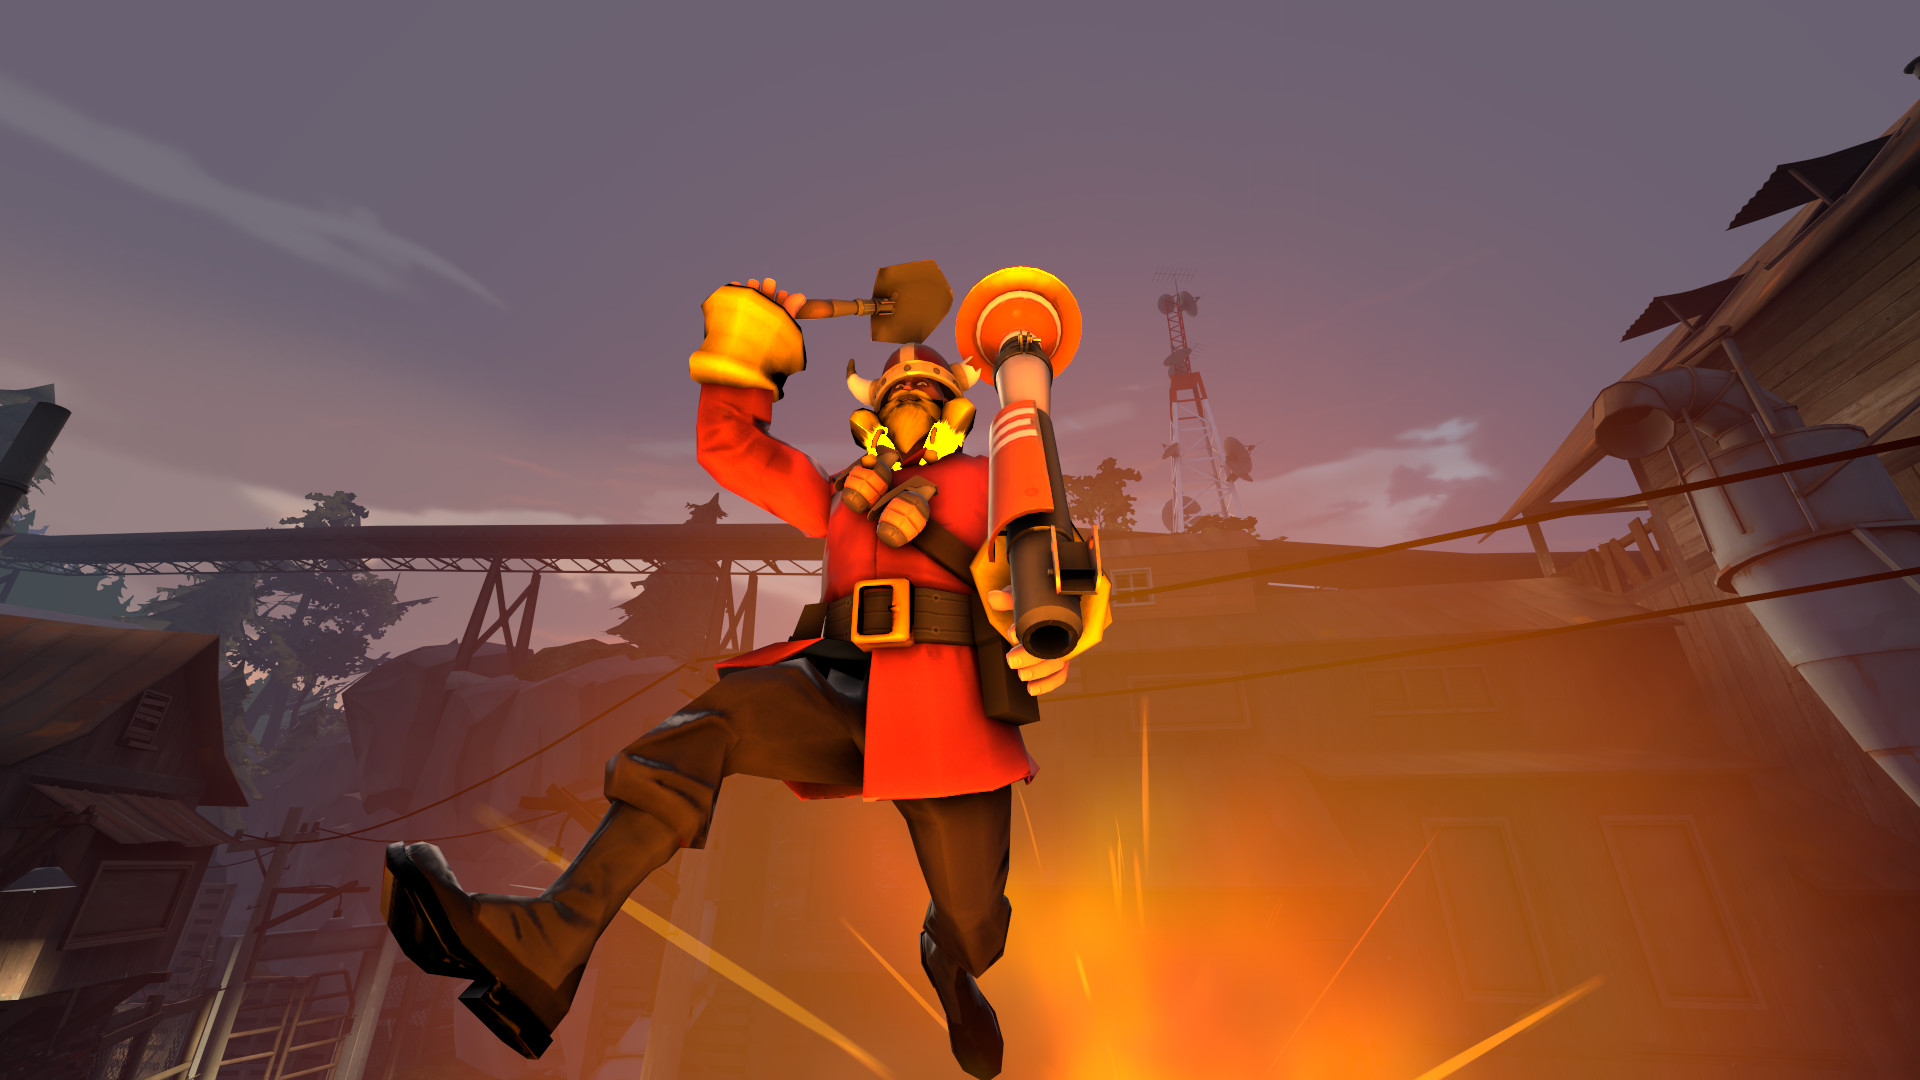 Tf2 soldier rocket jumping | How to Rocket Jump in Team Fortress 2